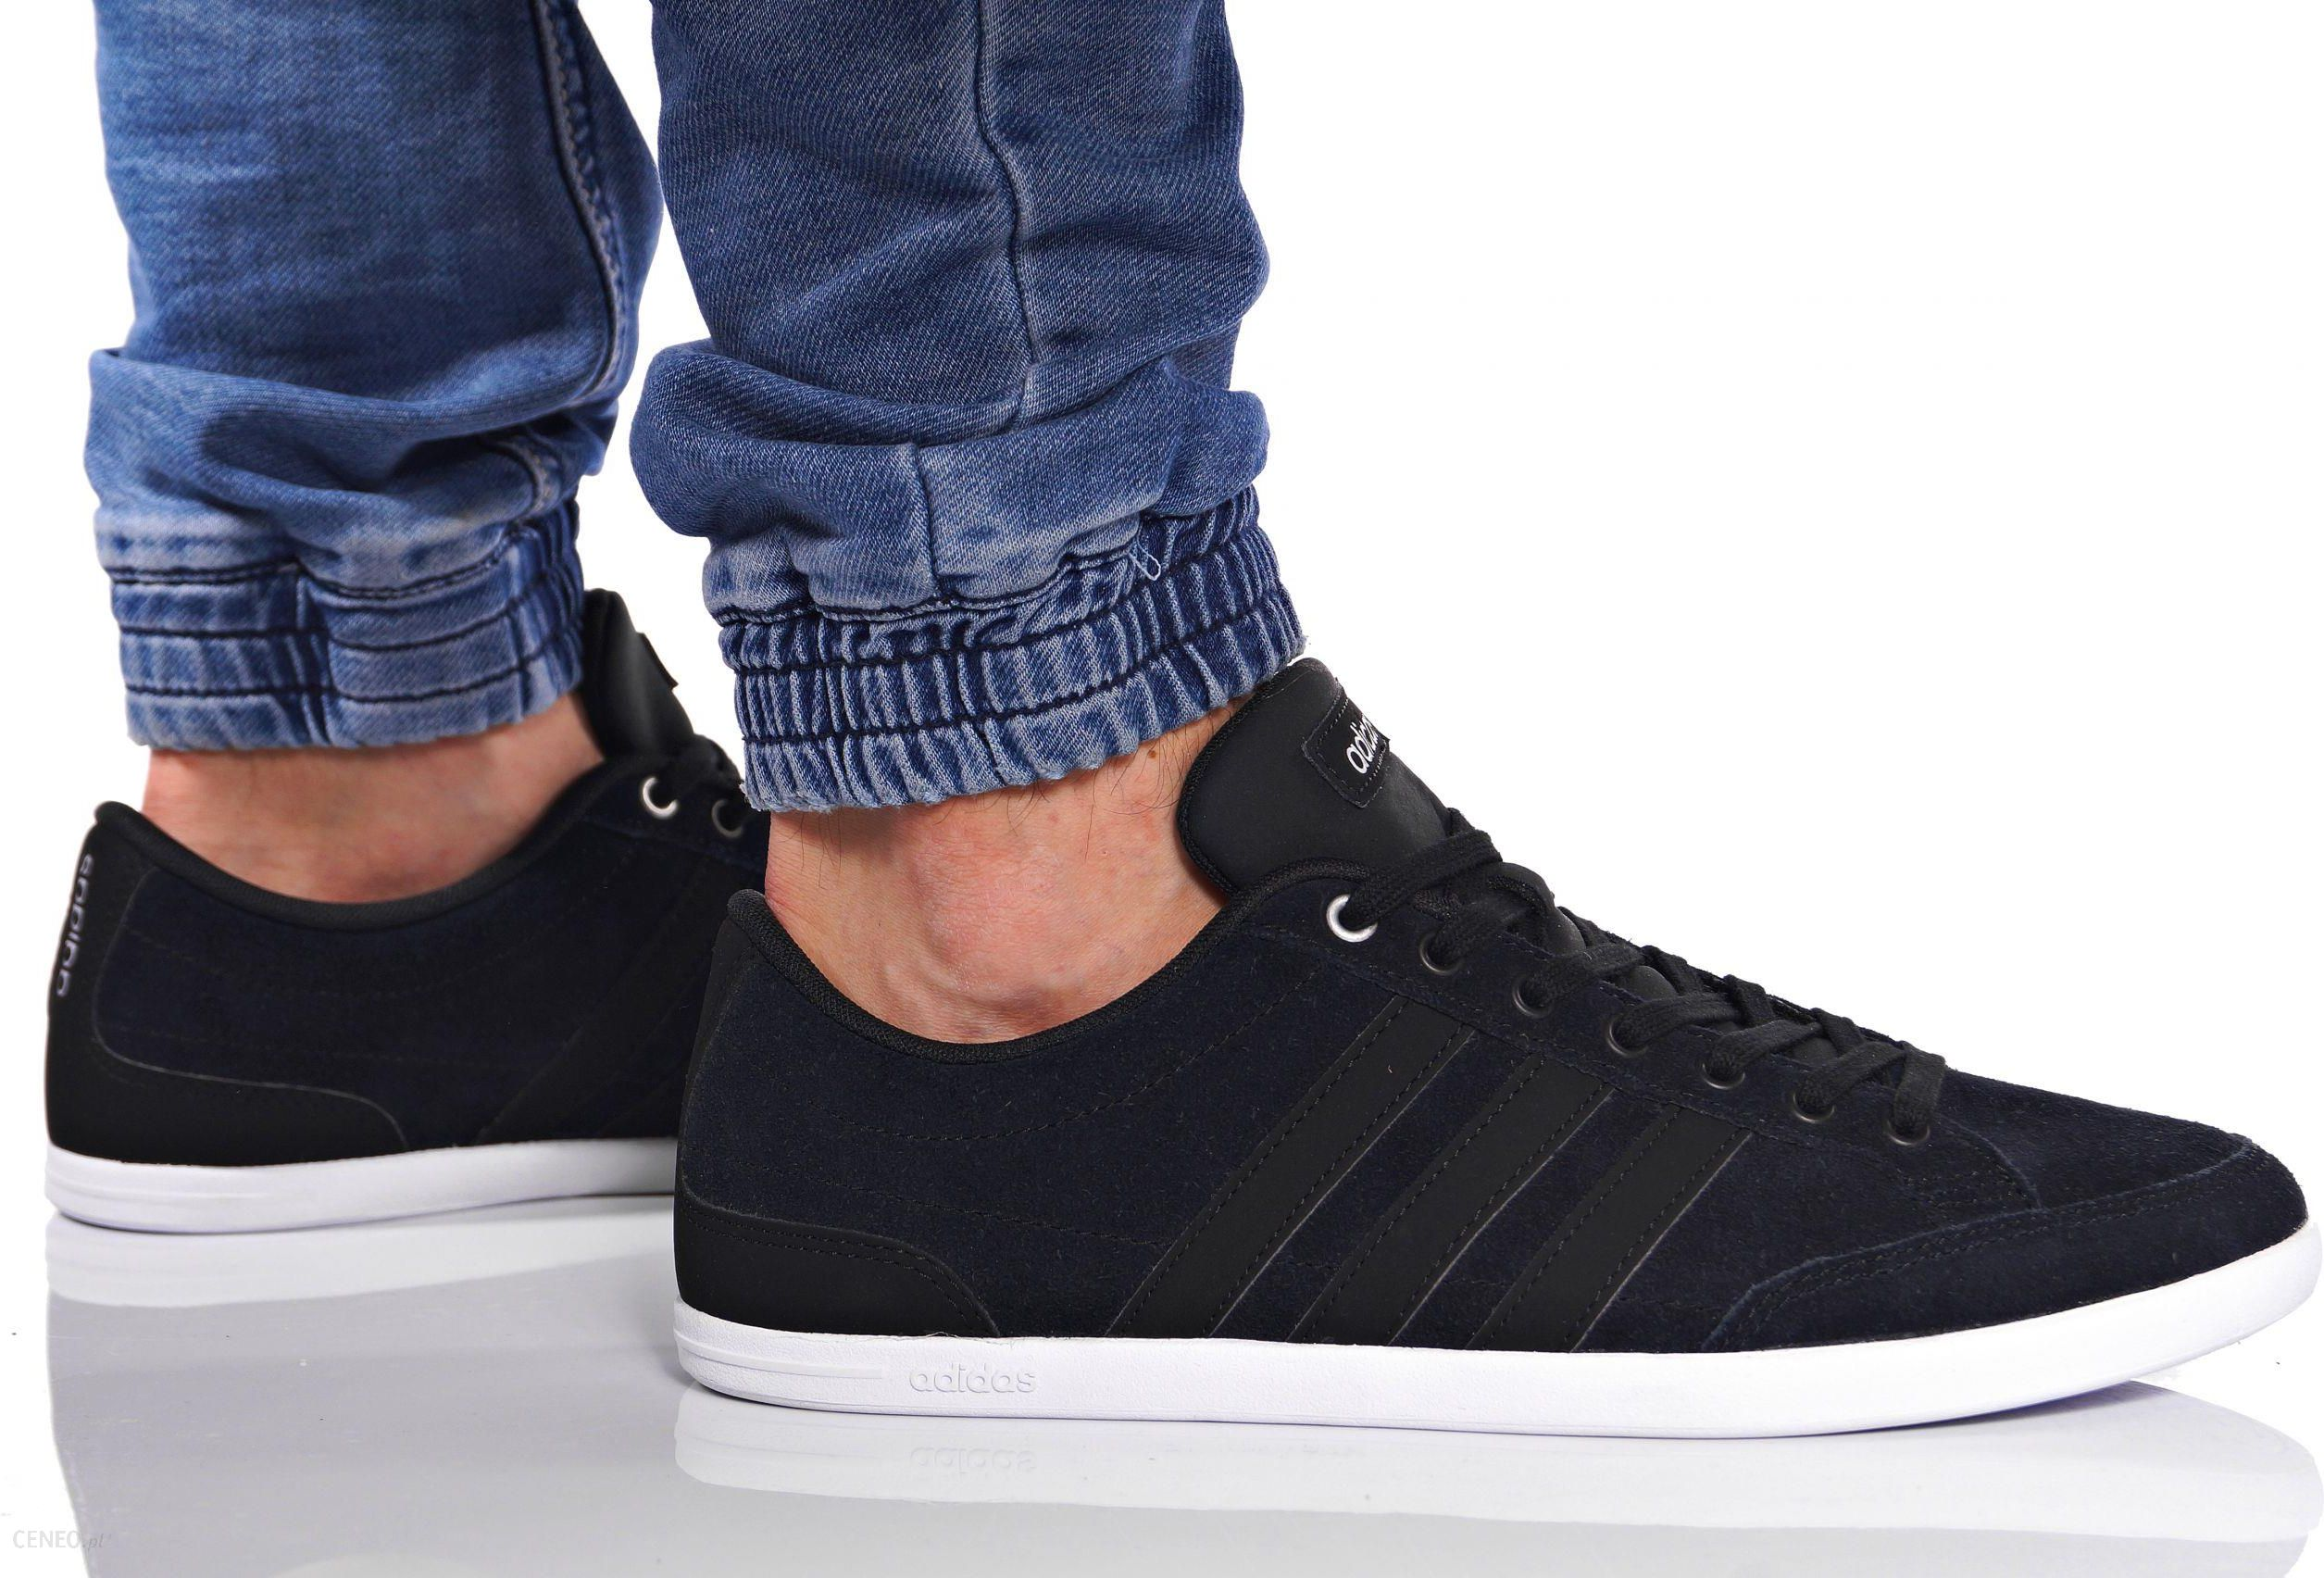 outlet store 43ebe 22c1a BUTY ADIDAS CAFLAIRE B74609 - zdjęcie 1